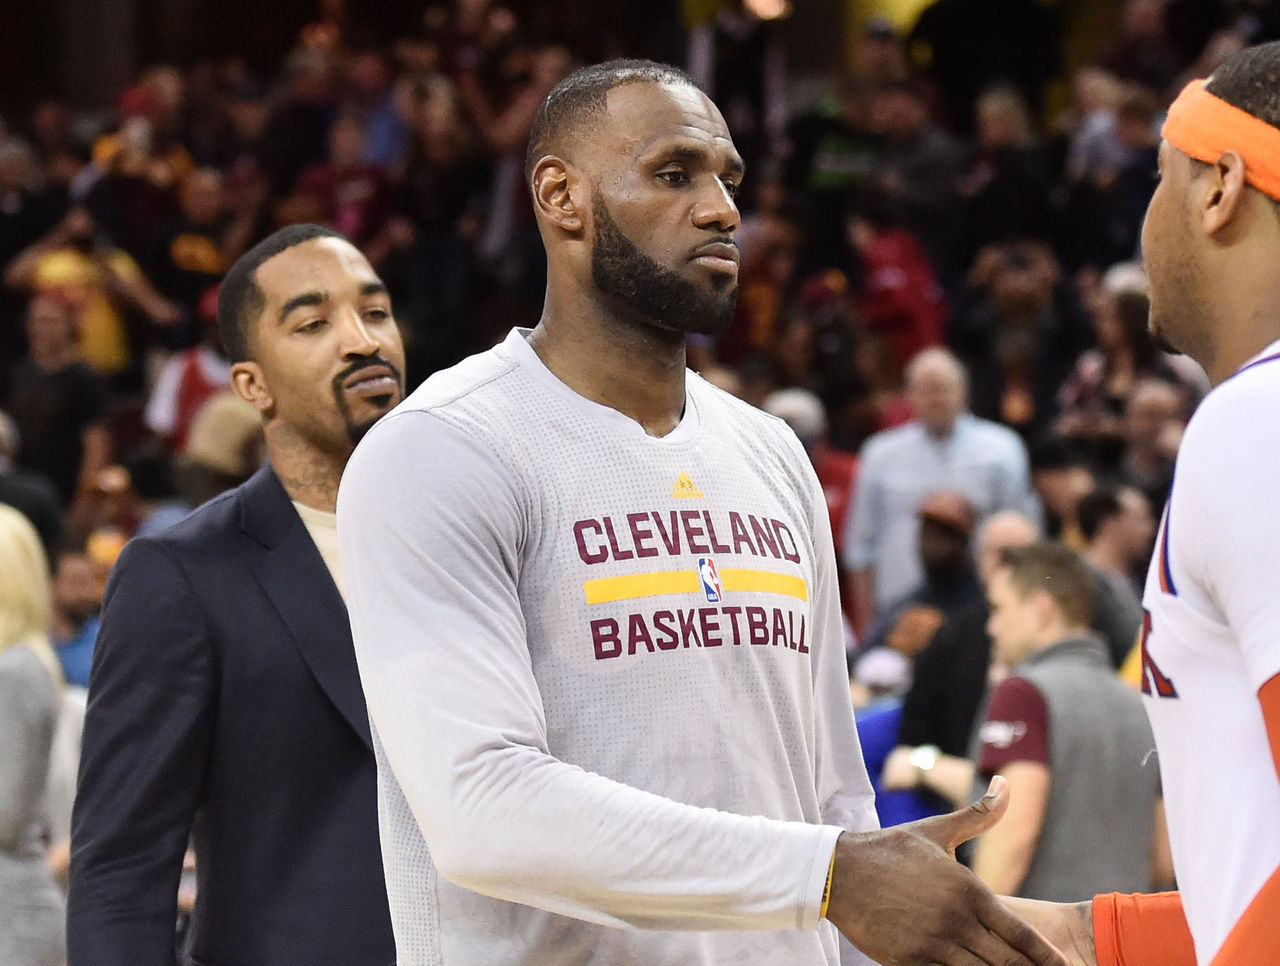 Cropped 2017 02 24t034720z 485235530 nocid rtrmadp 3 nba new york knicks at cleveland cavaliers